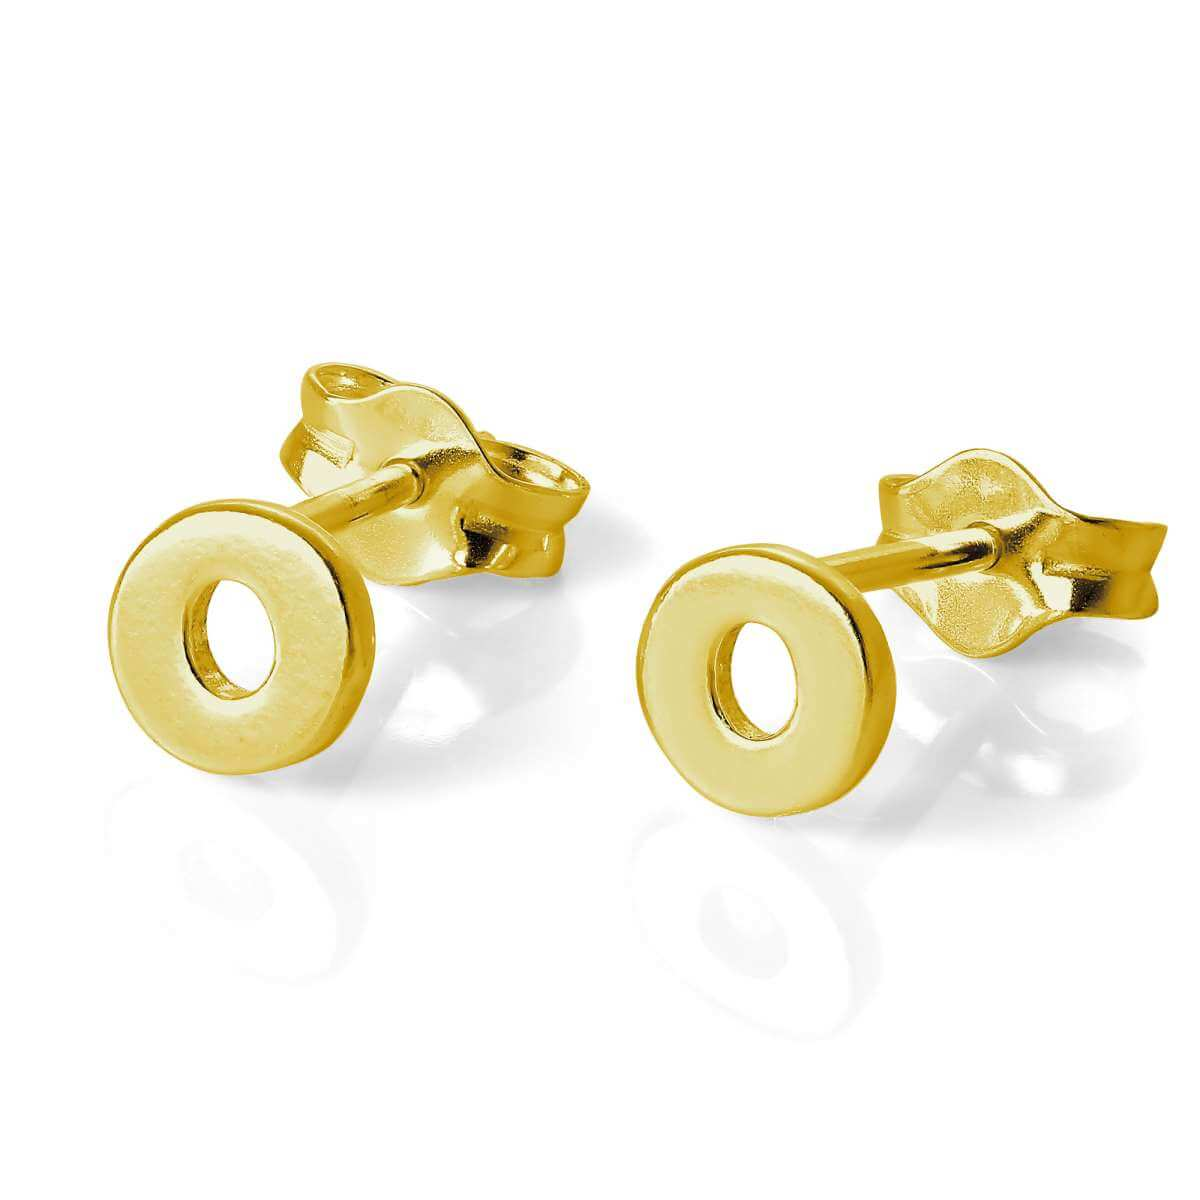 Gold Plated Sterling Silver Alphabet Letter O Stud Earrings